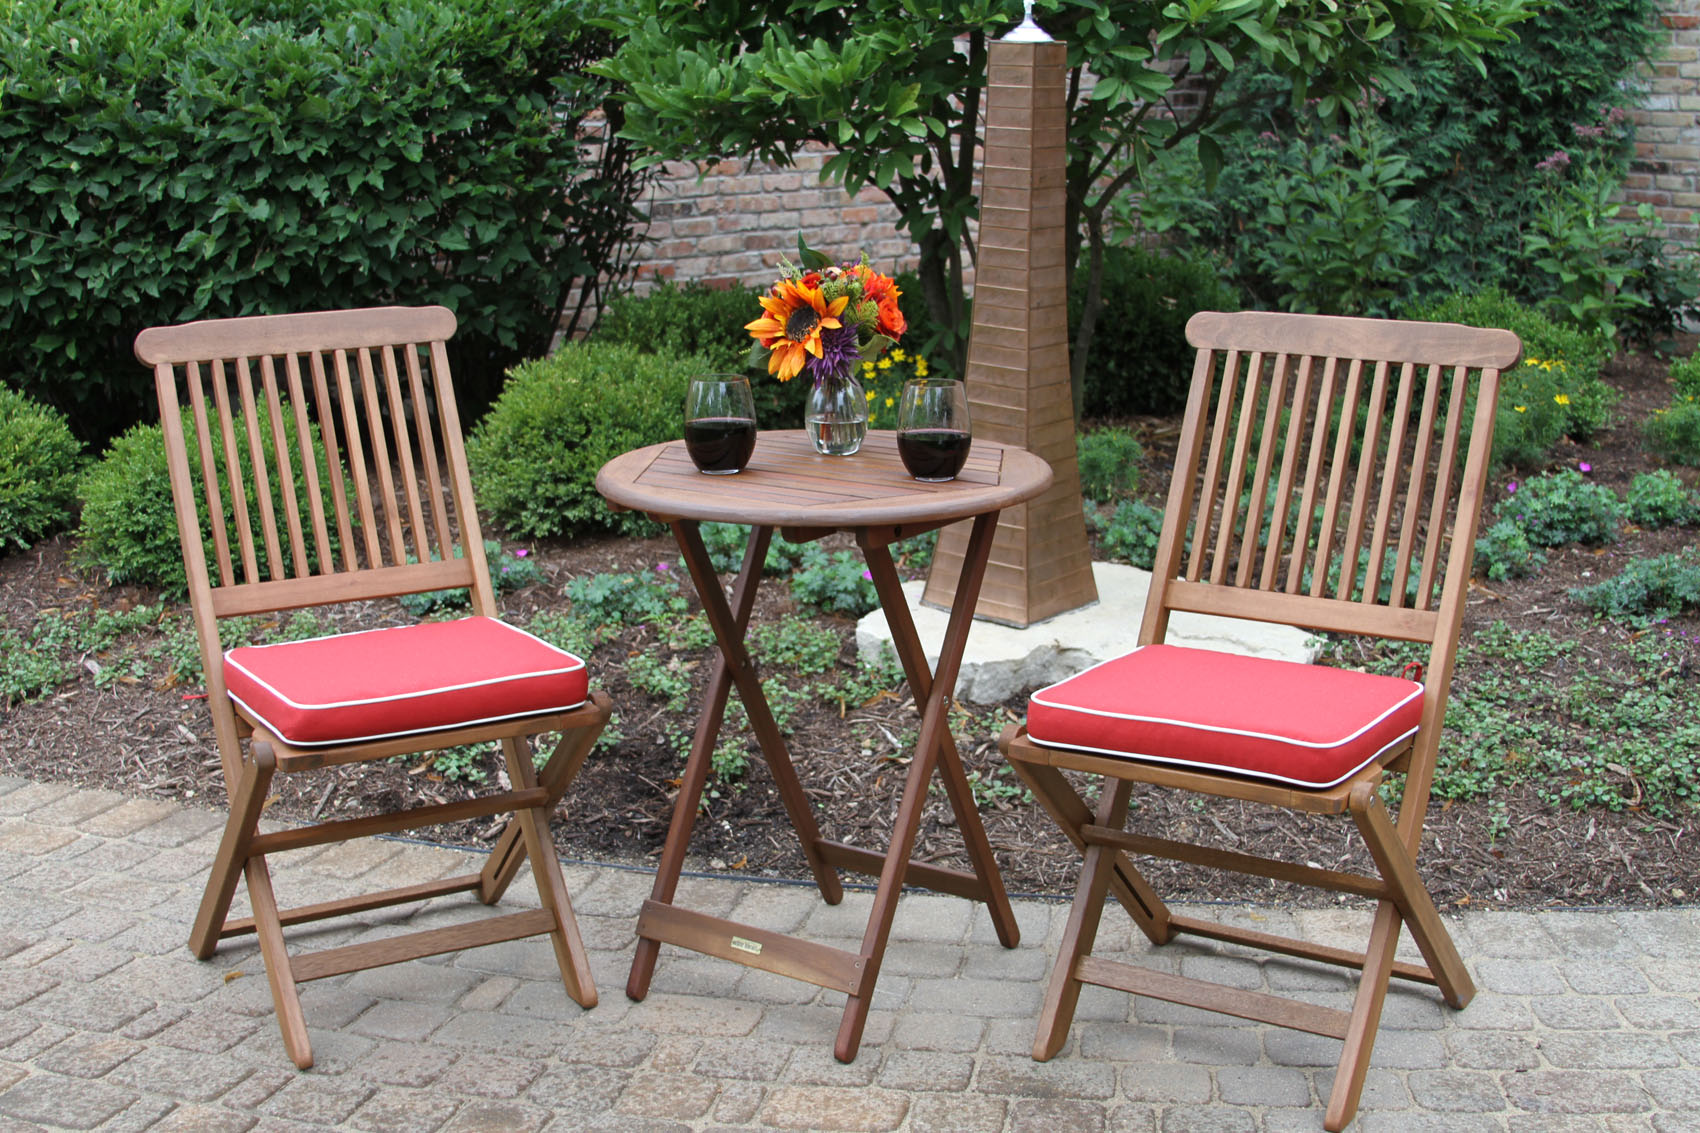 3pc. Round Wood Bistro Set With Chairs And Red Cushions